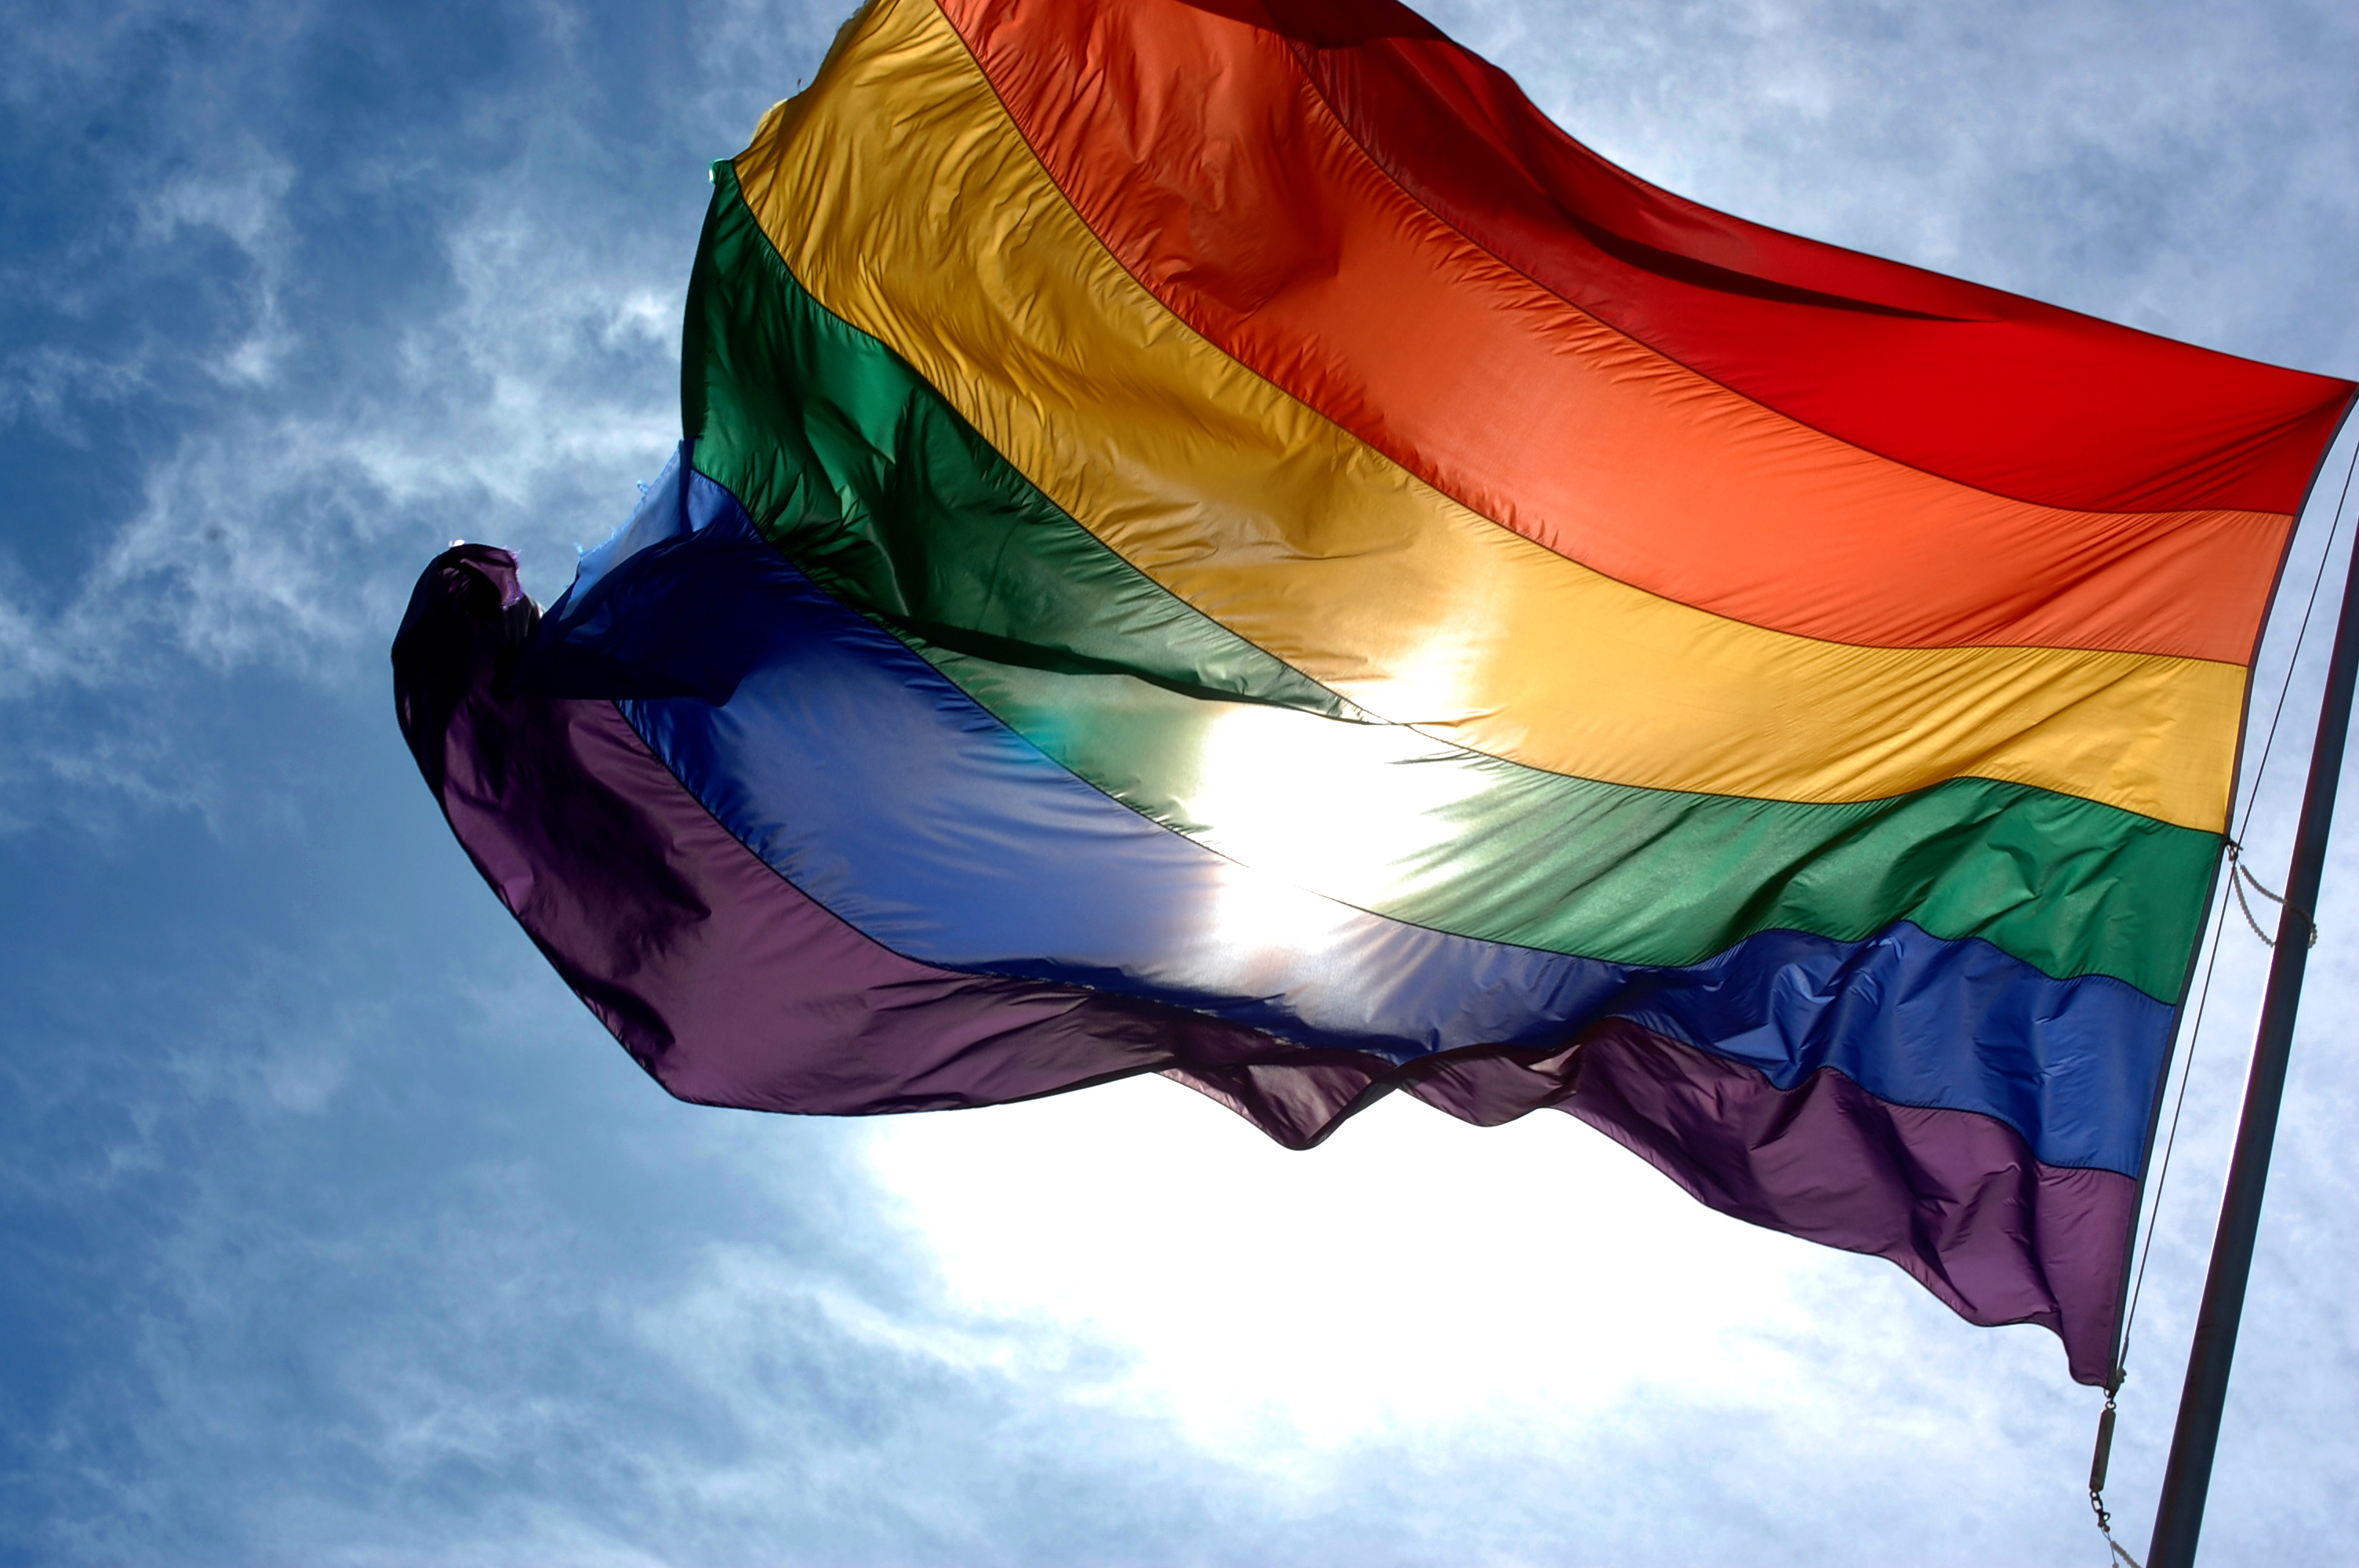 LGBT Flag for Equality and Diversity